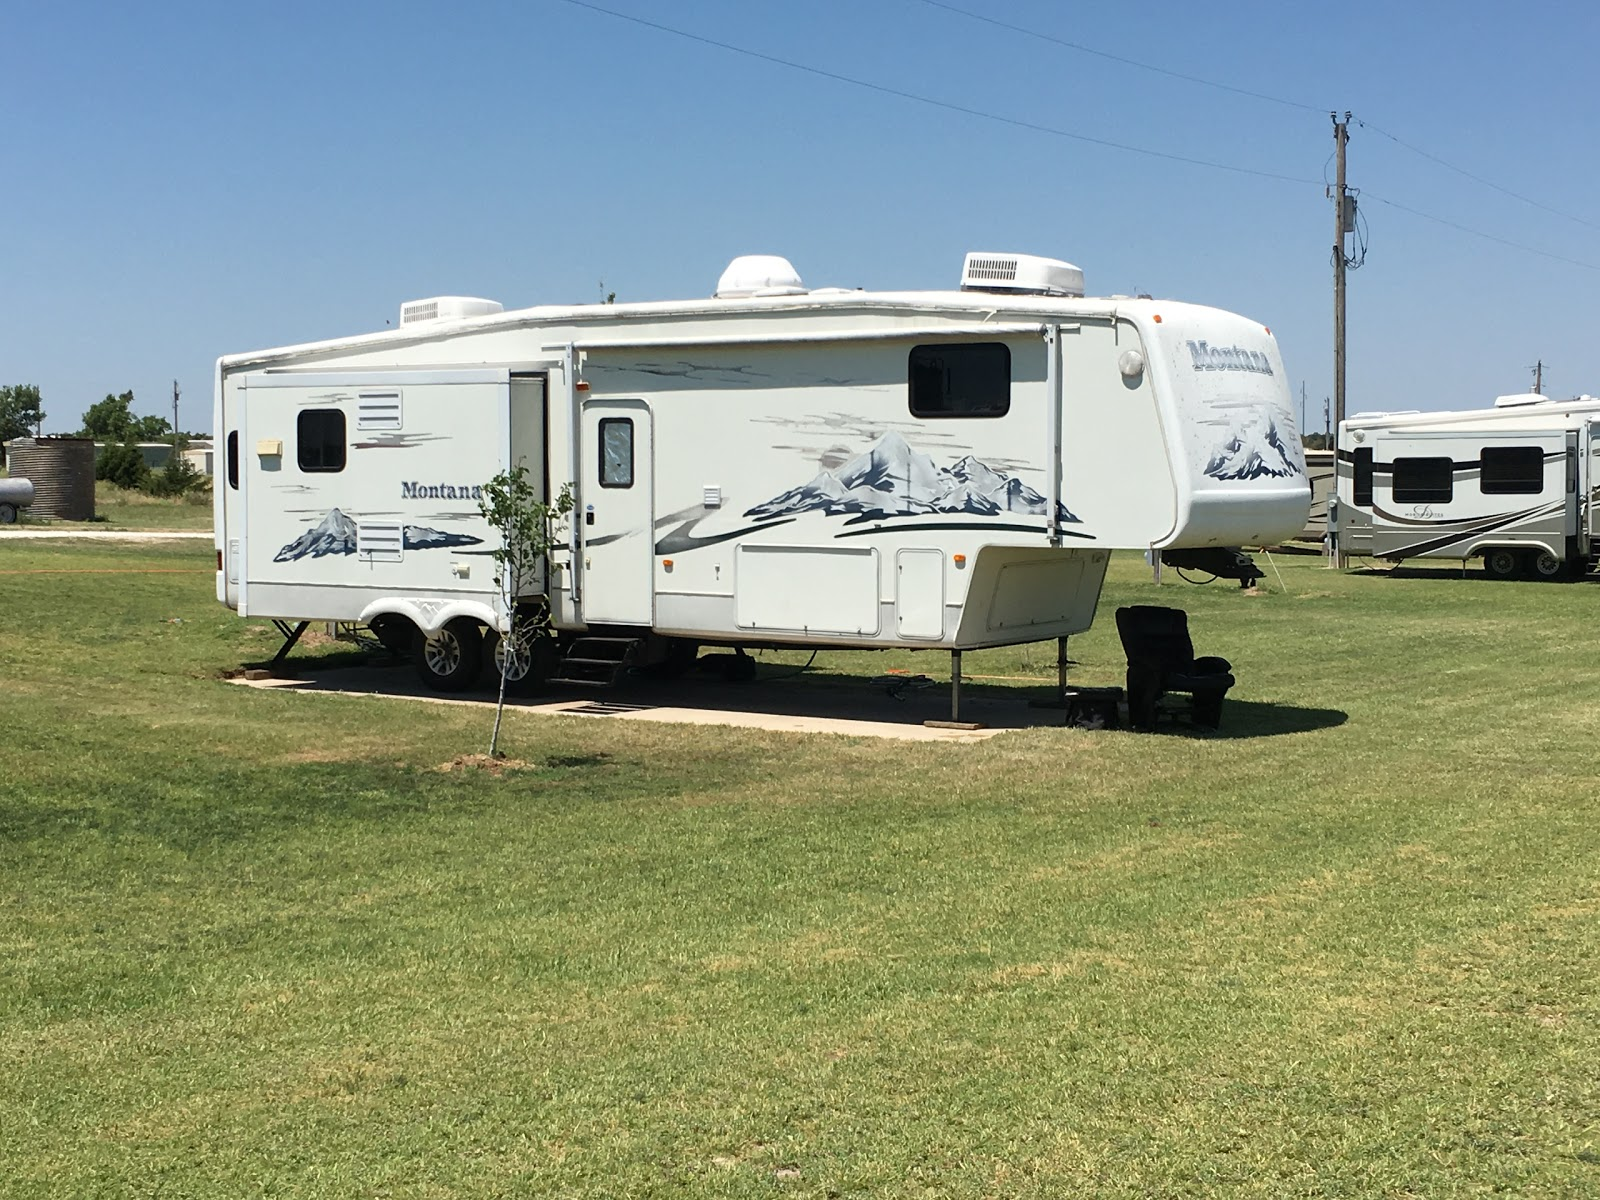 Woodward Campgrounds And RV Park